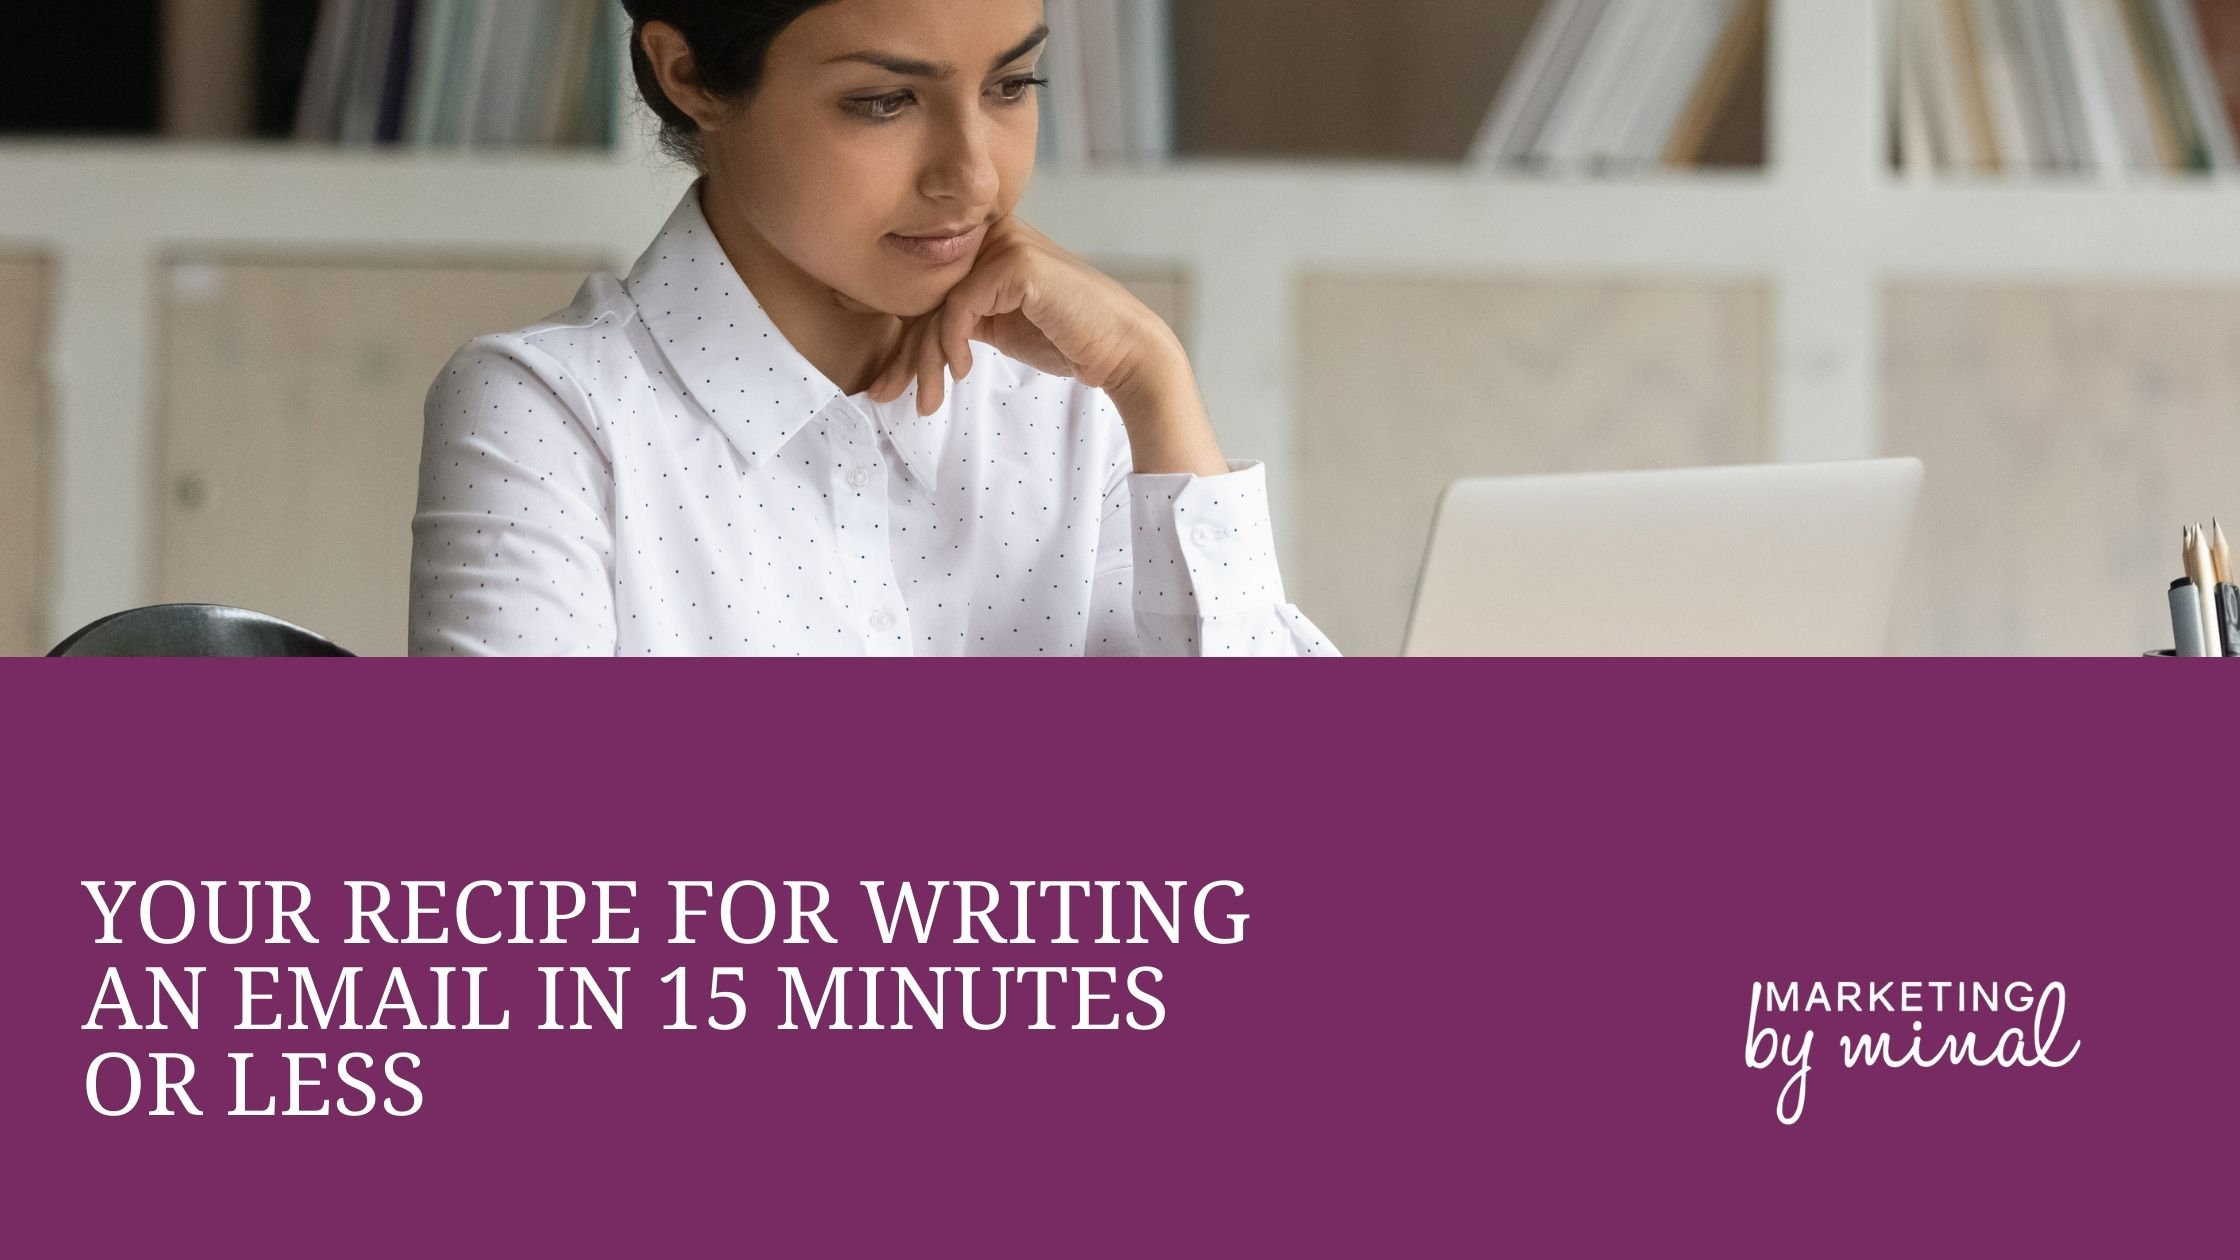 Your recipe for writing an email in 15 minutes or less